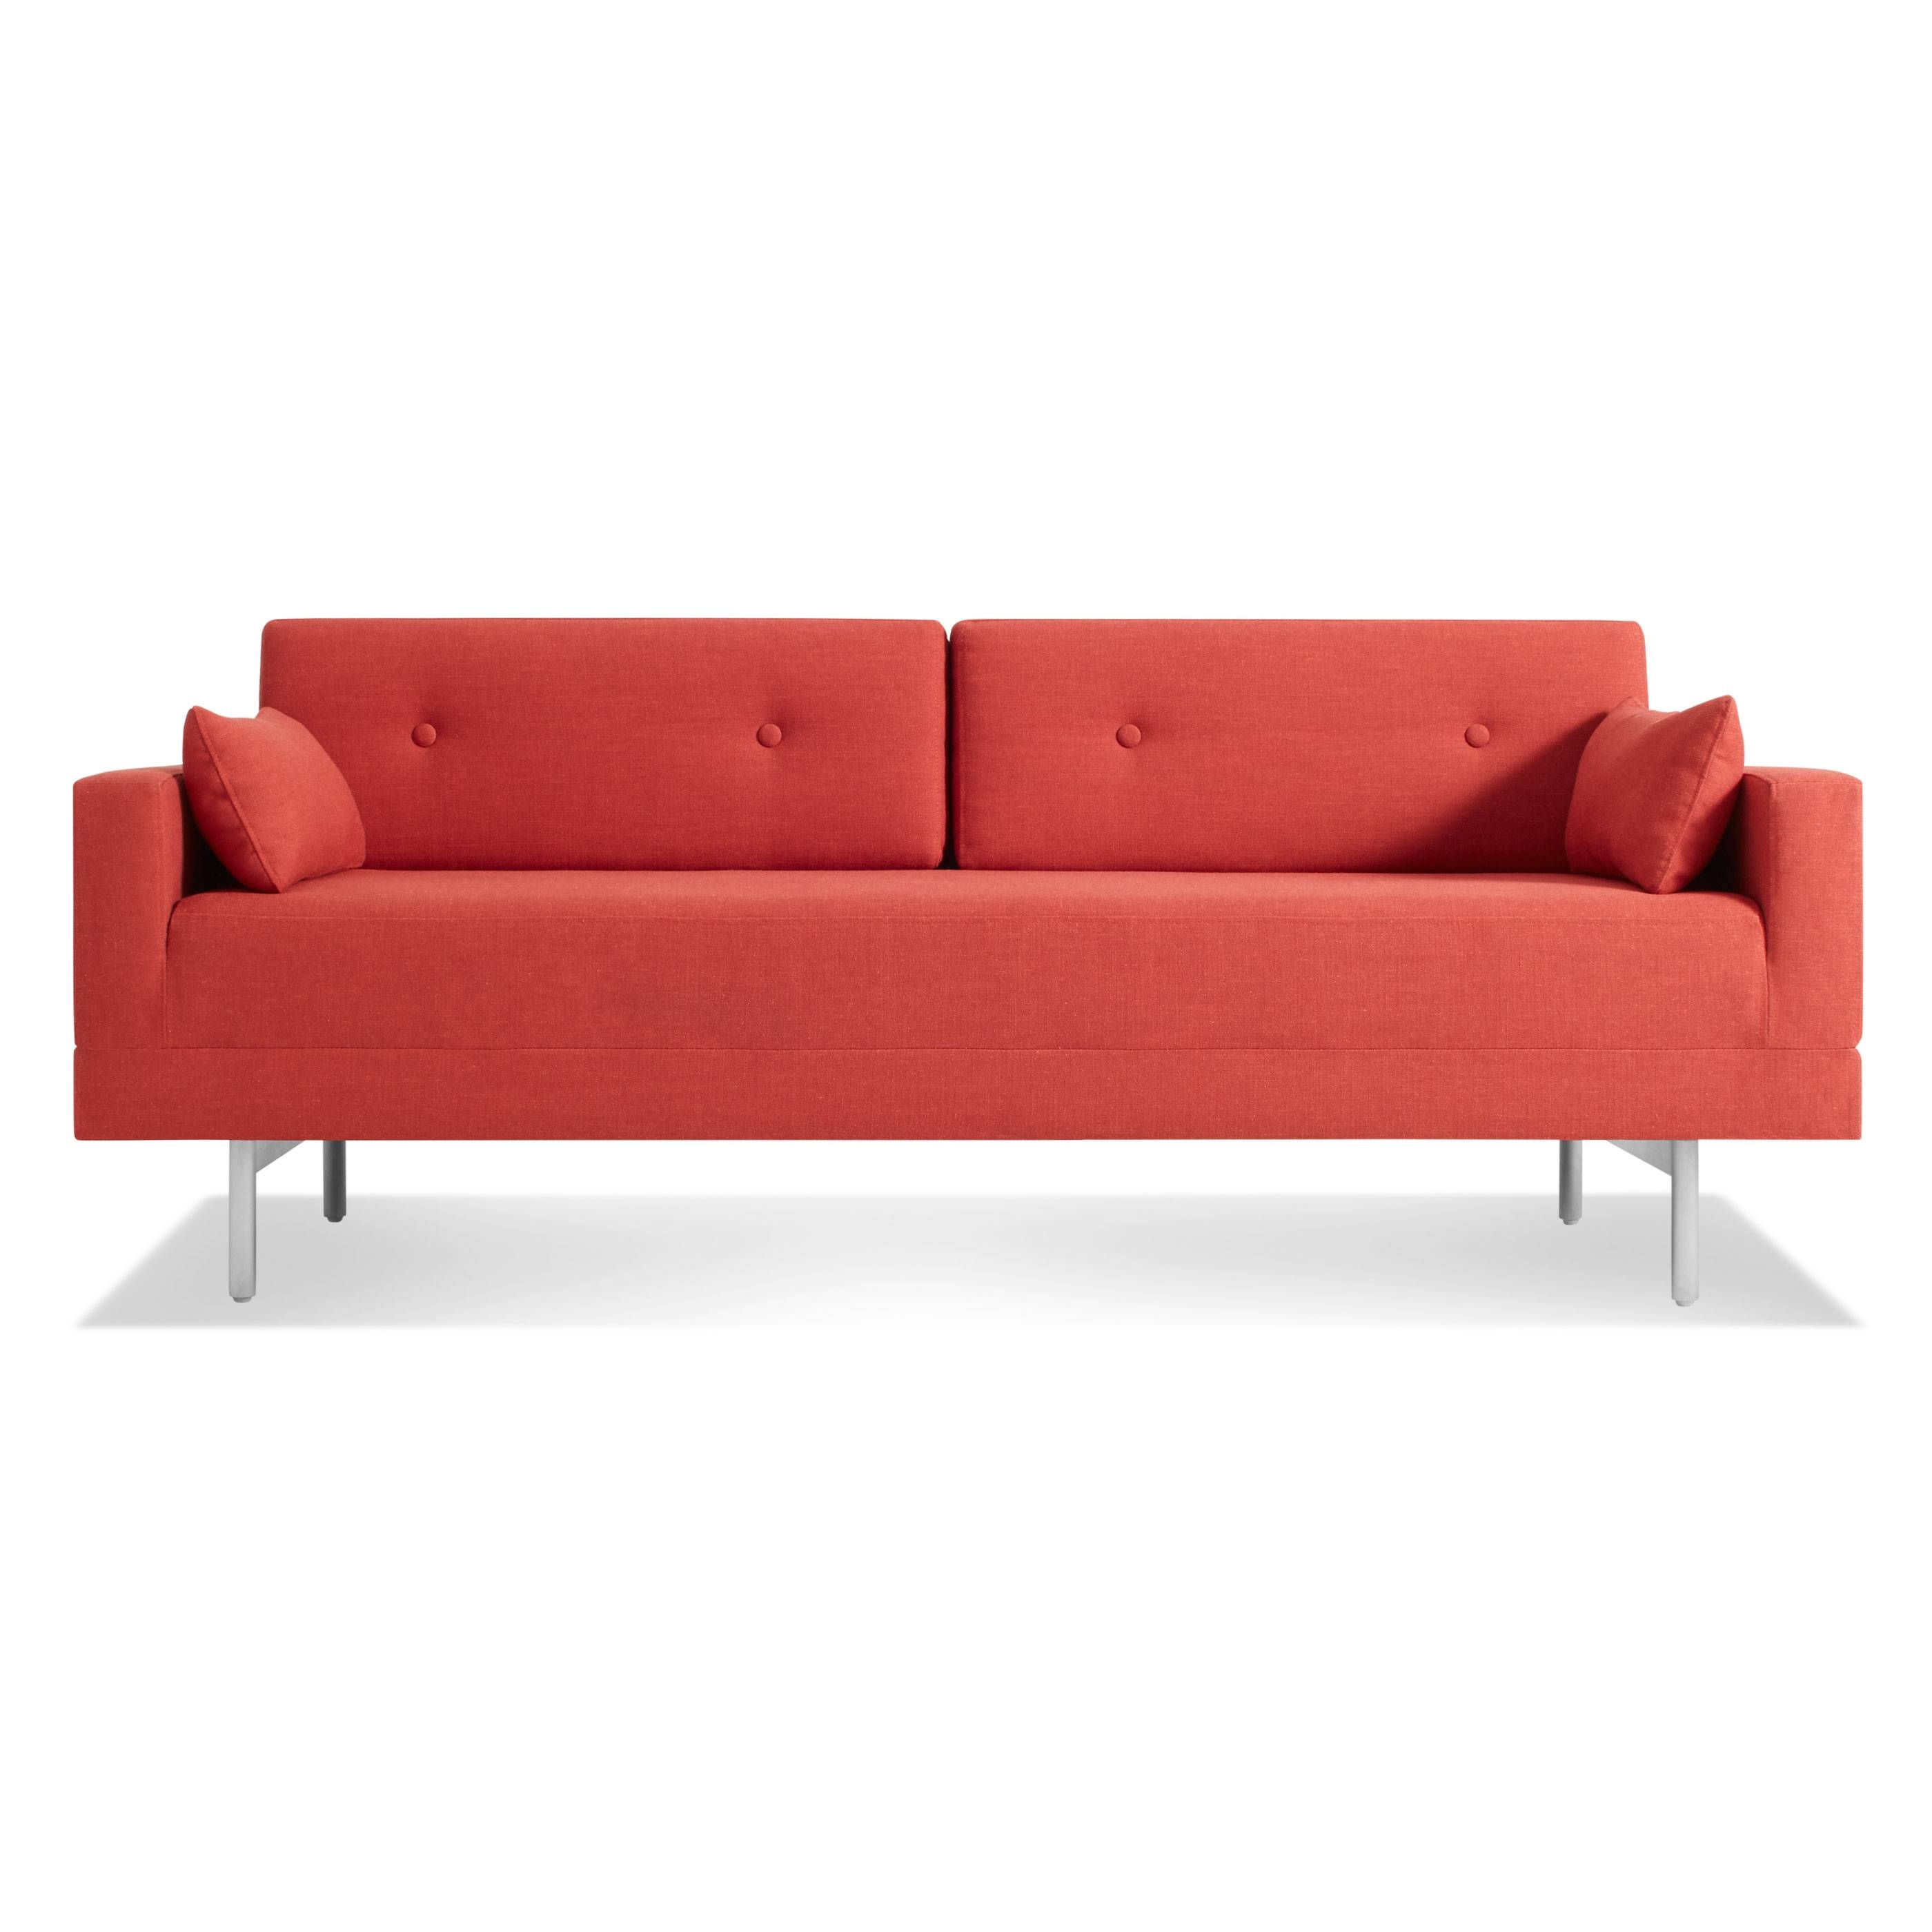 One Night Stand Modern Queen Sleeper Sofa | Blu Dot with regard to Red Sleeper Sofa (Image 14 of 30)